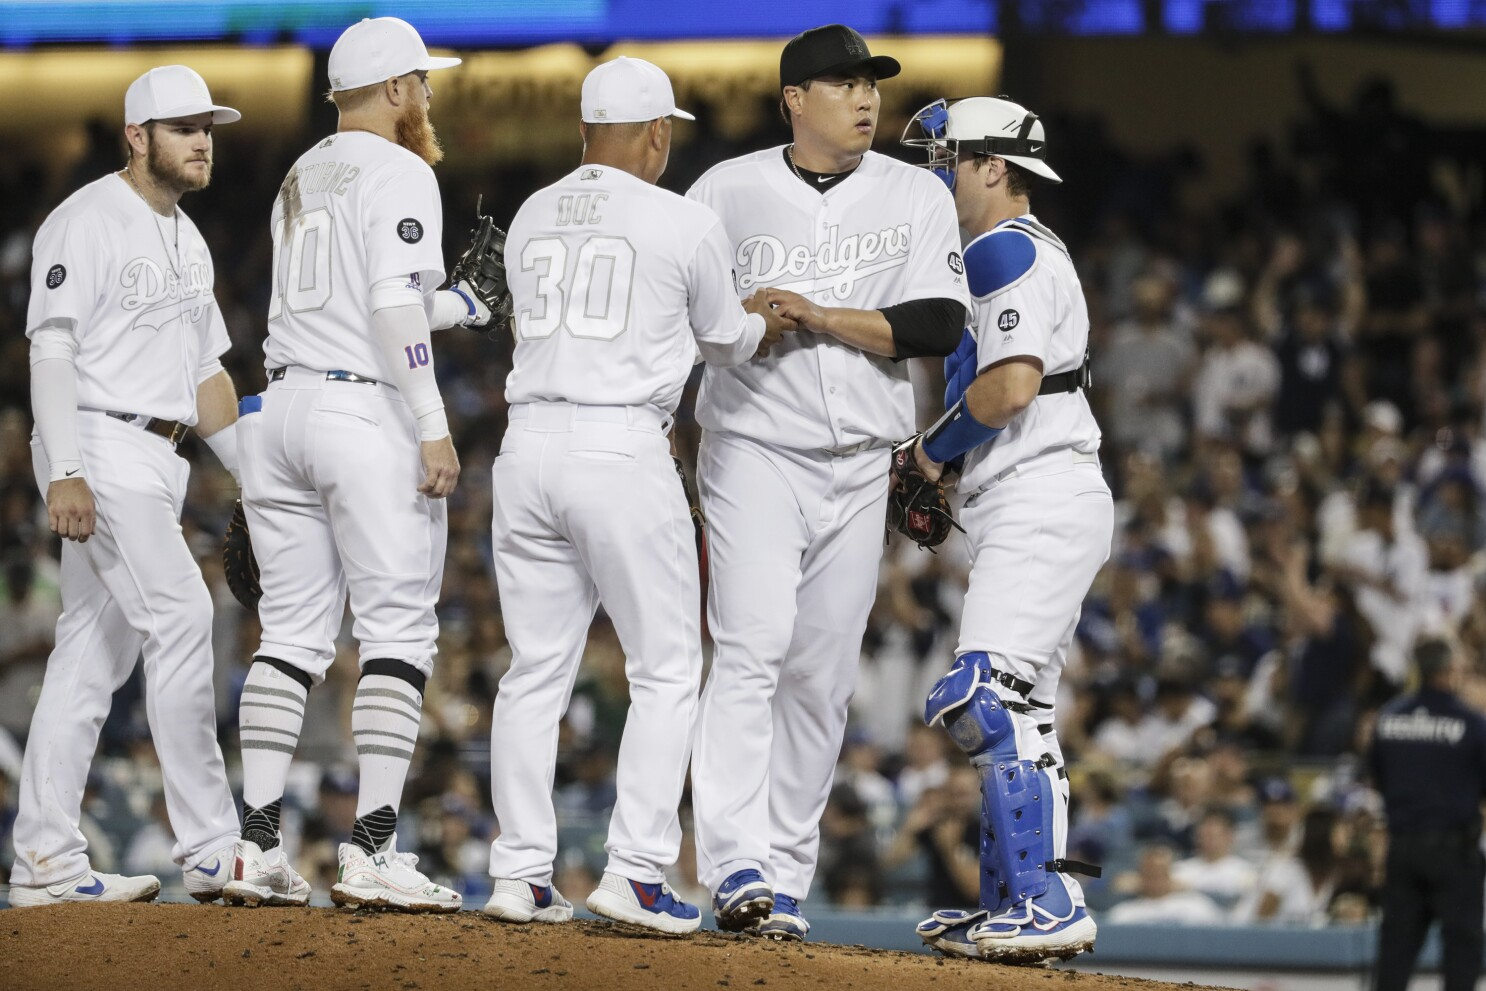 Dodgers and Hyun-Jin Ryu are routed by Yankees in series opener